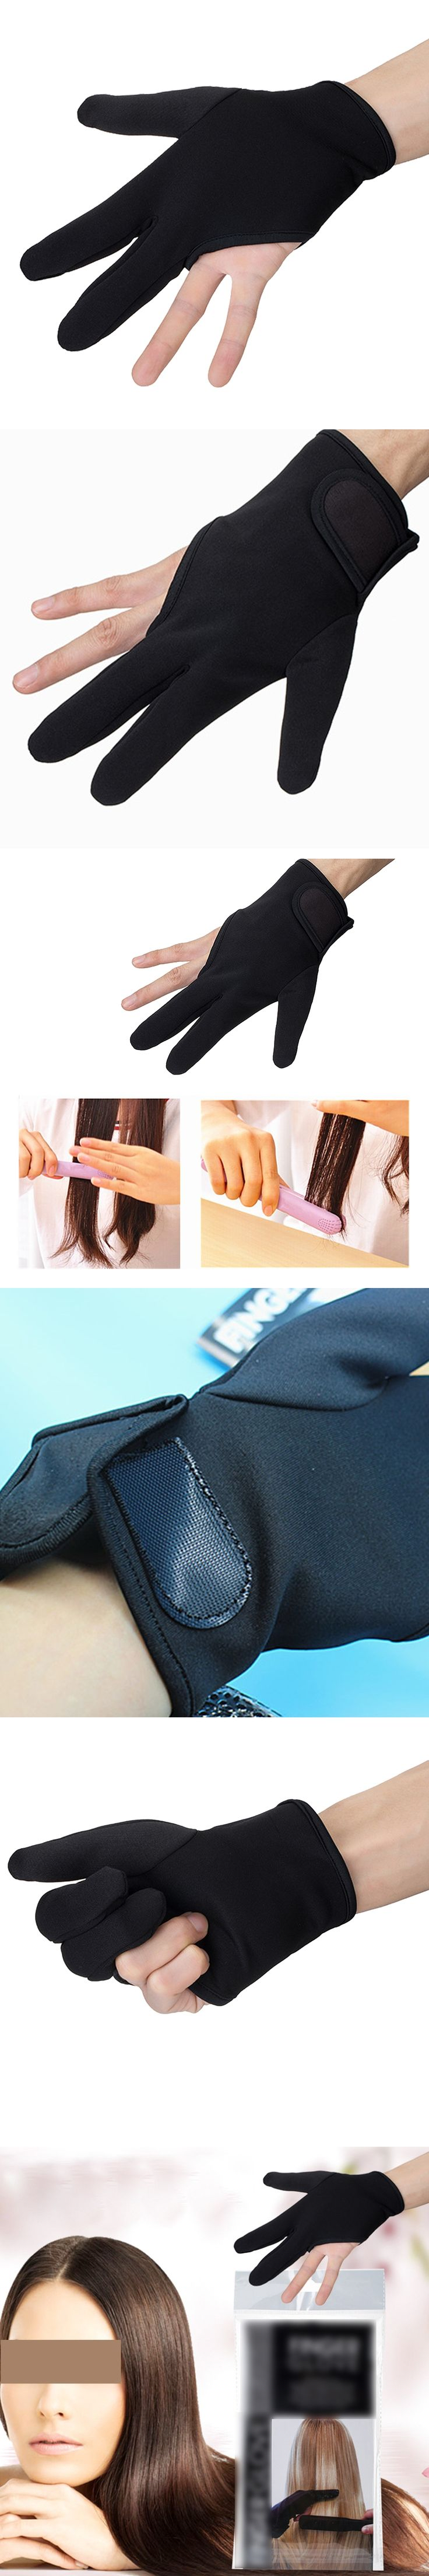 Good 1pc Three Fingers Glove Hairdressing Heat Resistant Hair Straightening Curling Finger Glove Hair Styling Accessories Tools